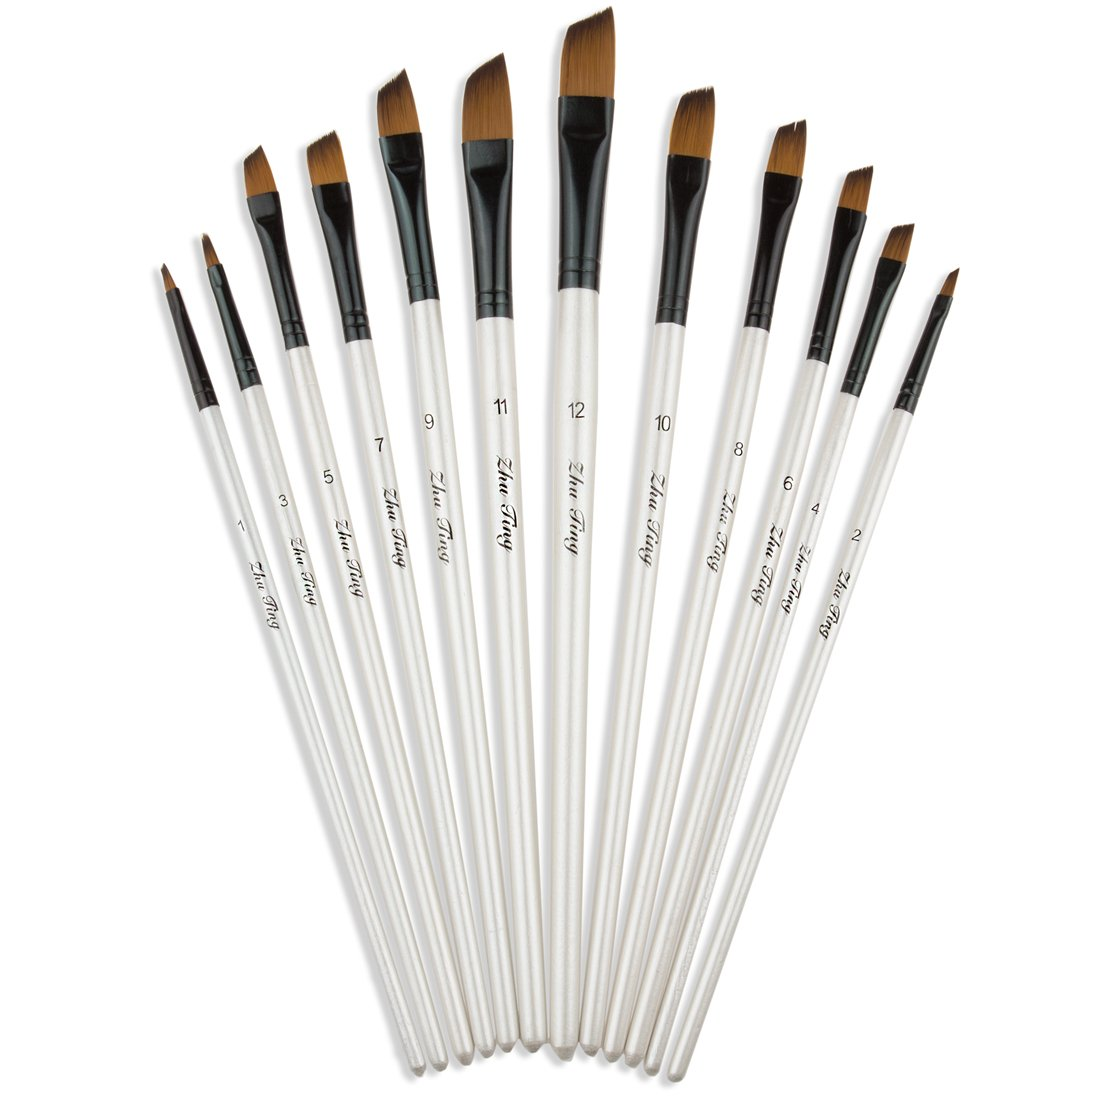 StarVast Painting Brushes, 12pcs Professional Angled Paint Brush Set for Watercolor/Oil/Acrylic/Crafts/Rock/Face Painting and Gouache - White 4336963467